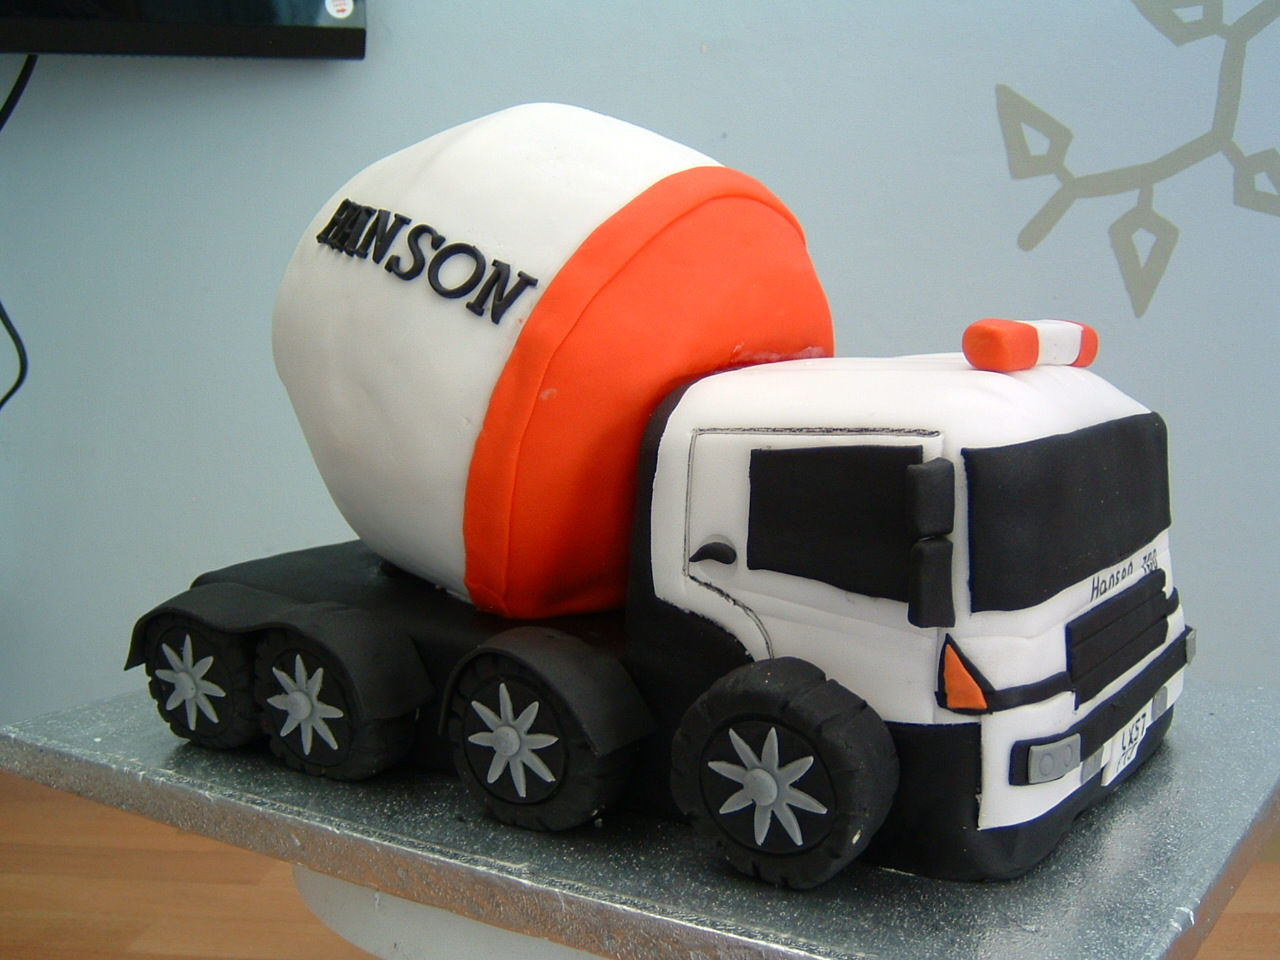 Andreas Cakes For All Occasions Cake Design Kent Wix